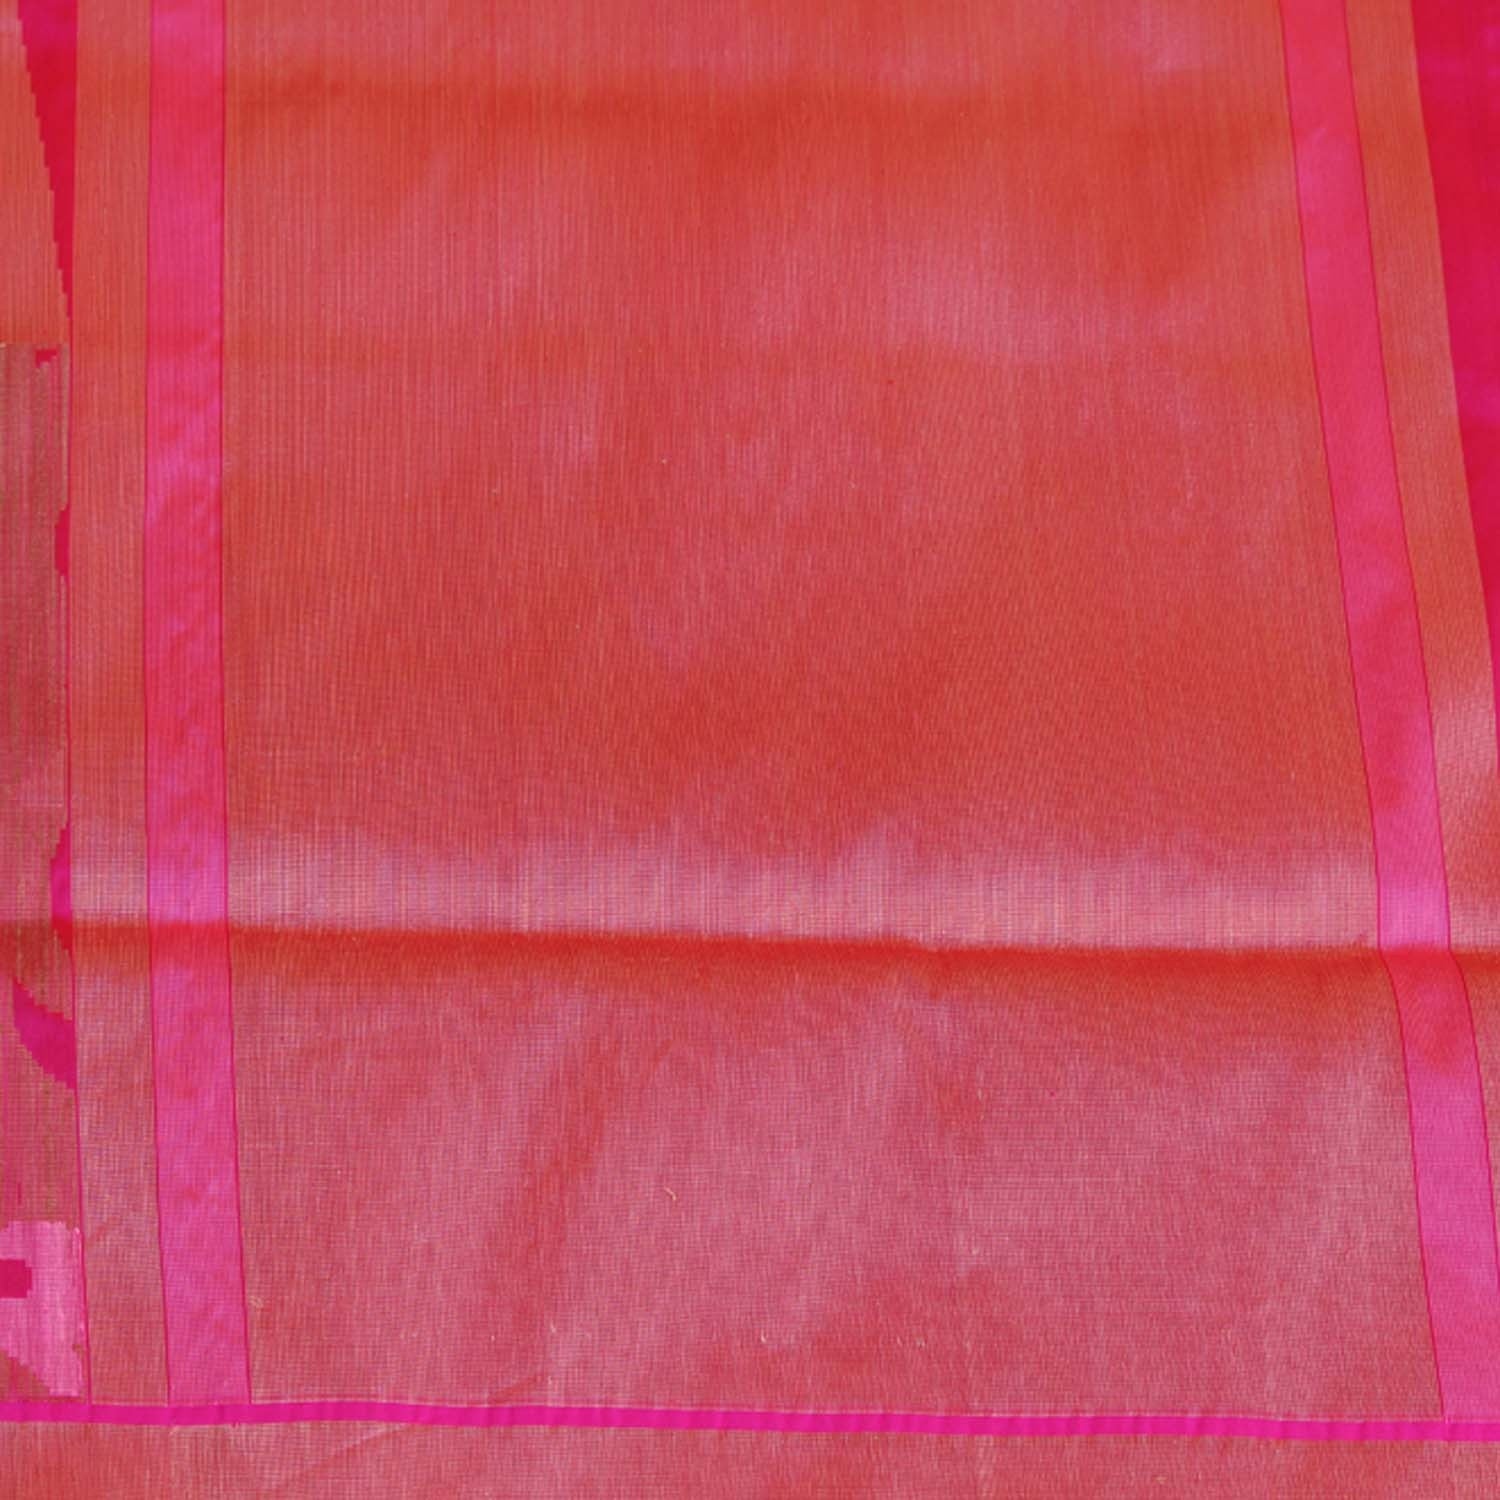 Rust-Indian Pink Shot Color Pure Katan Silk Banarasi Handloom Saree - Tilfi - 5